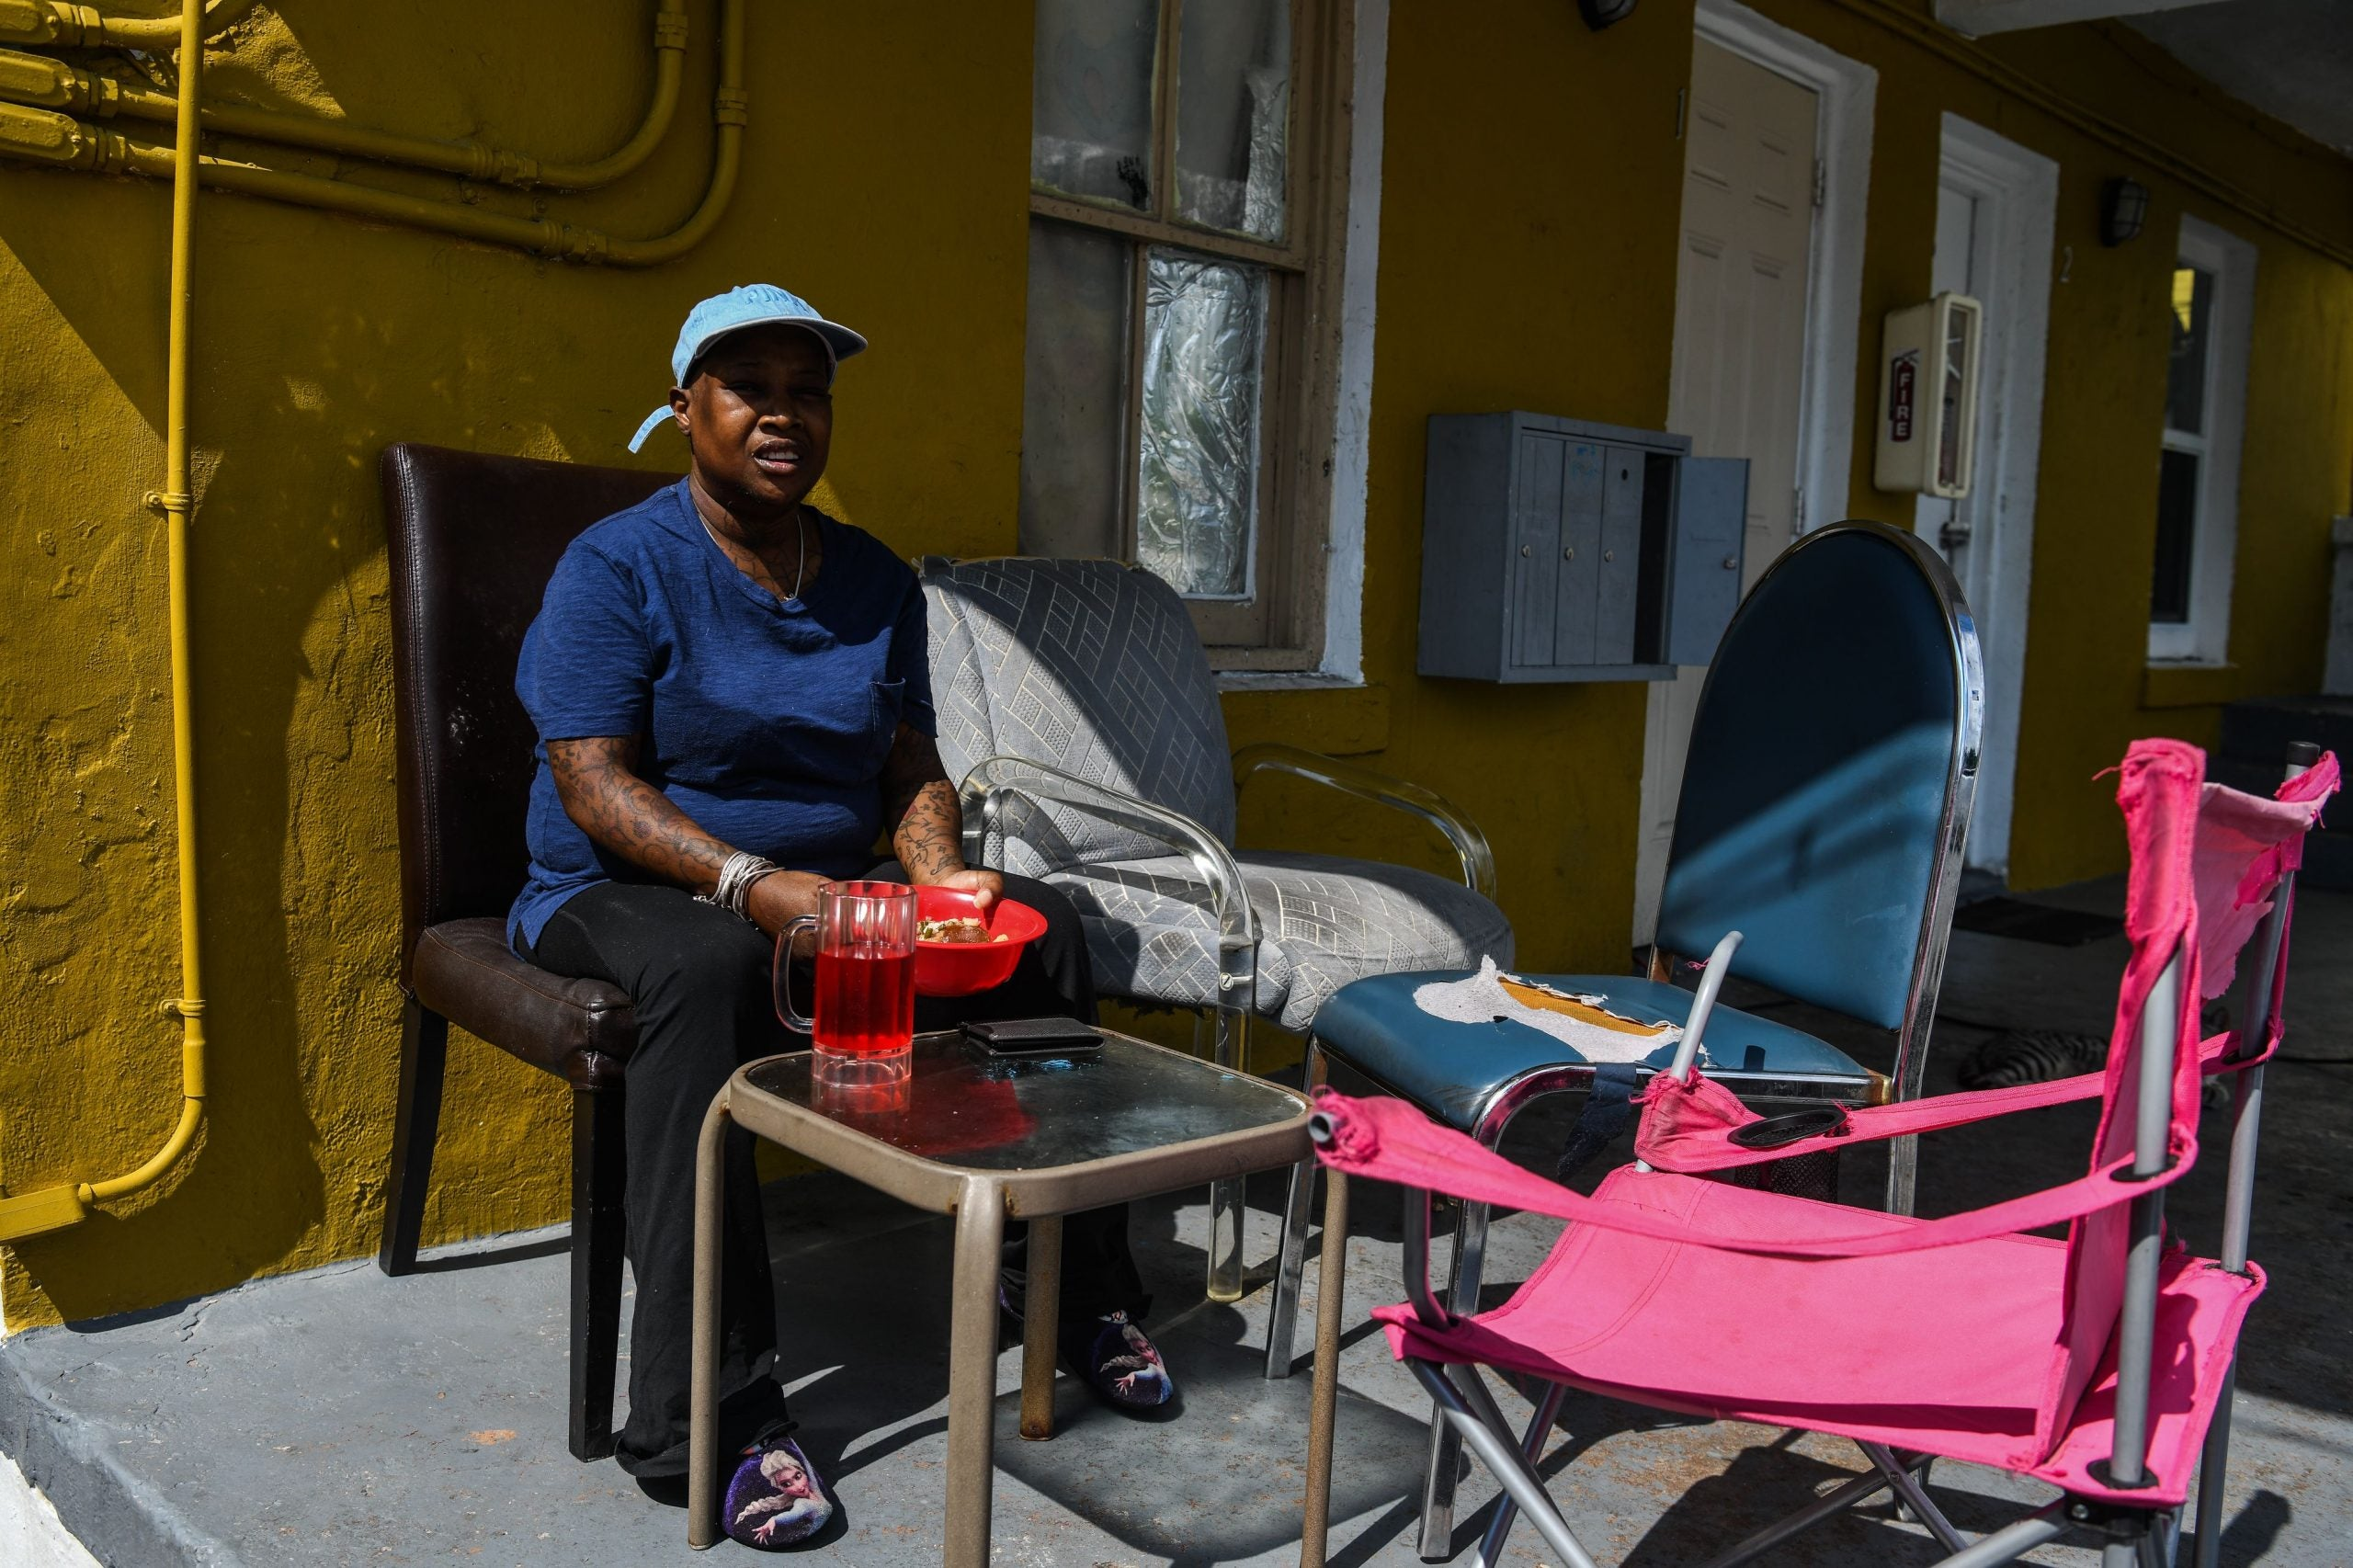 Felicia Jones, 41, eats her food as she sits outside her grandmother's house in a low income, mostly African-American neighbourhood in Miami, on April 19, 2020